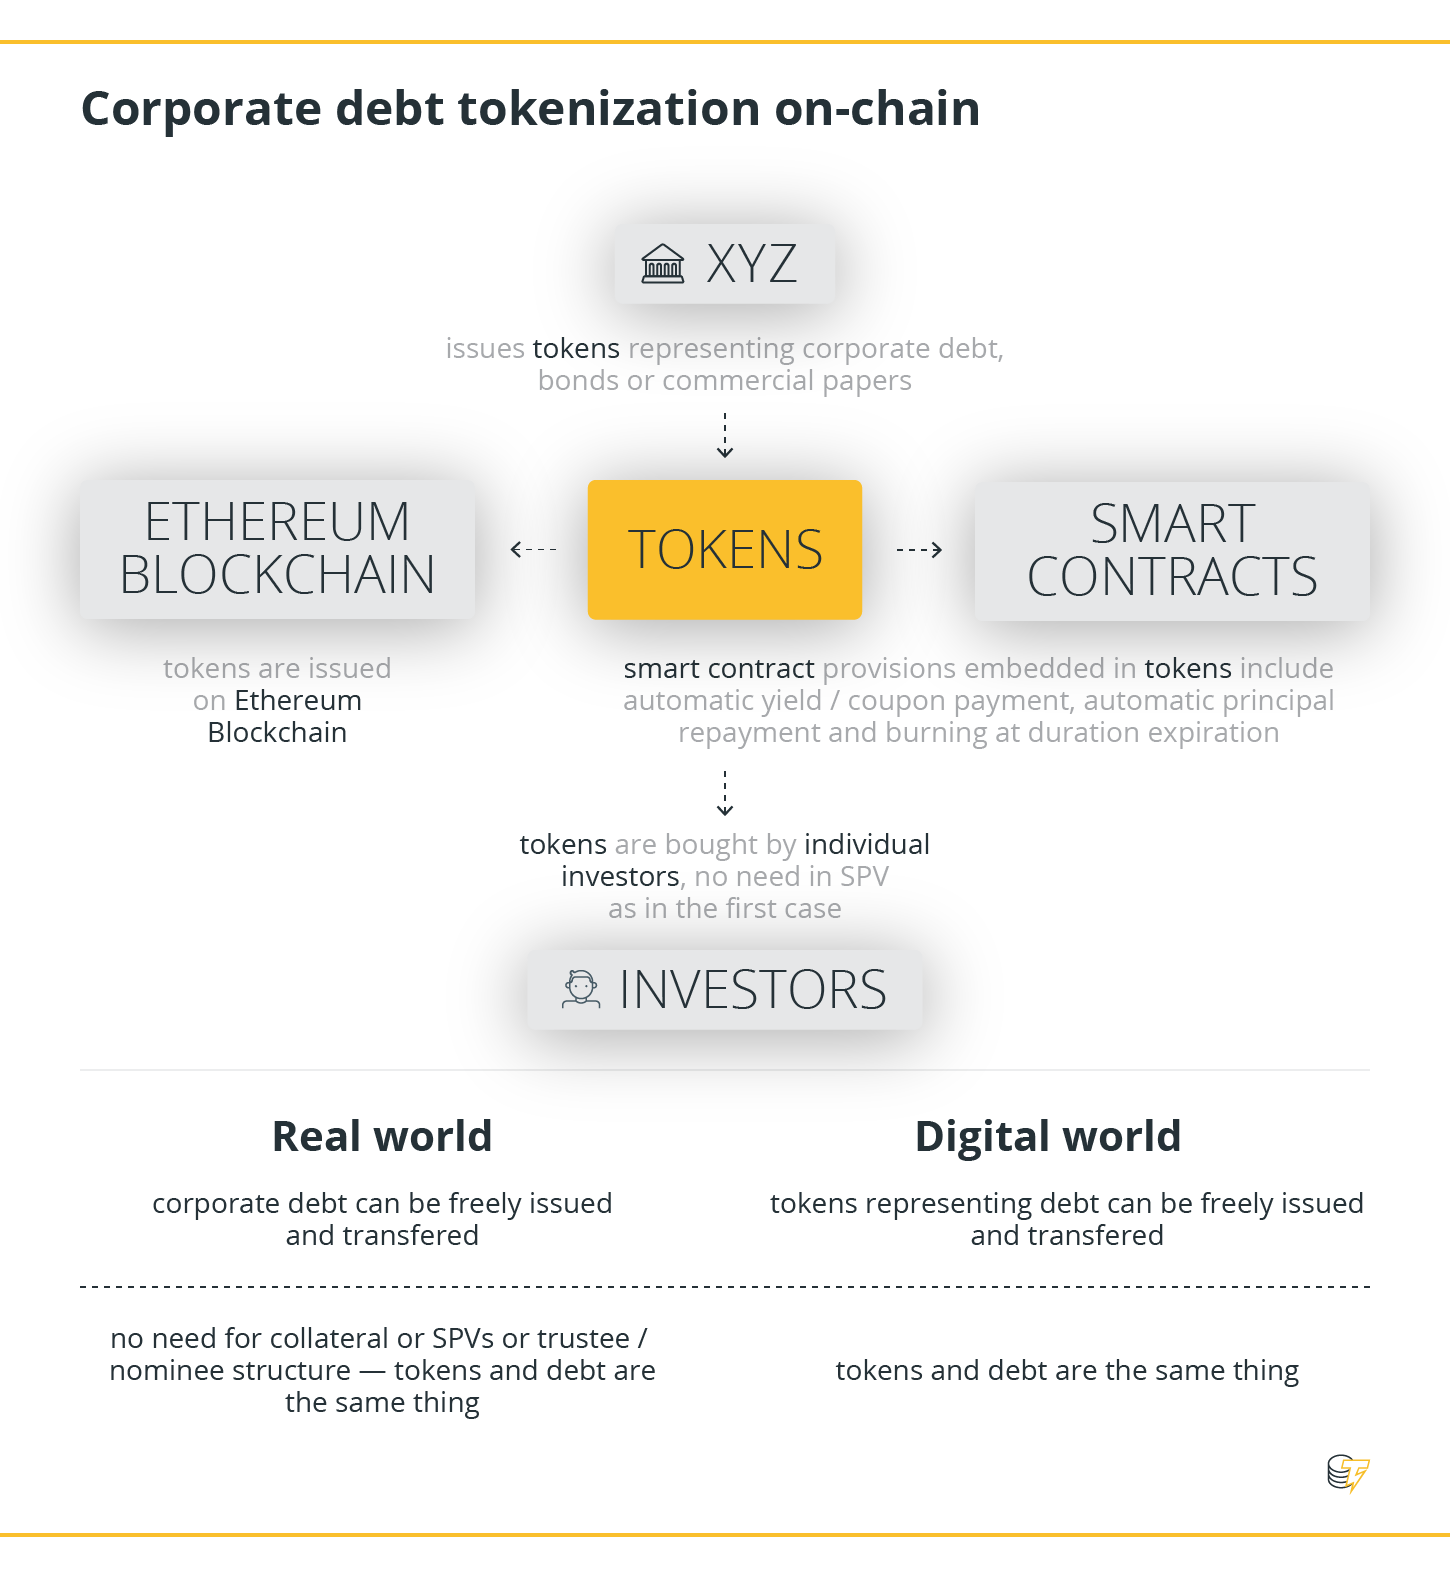 Corporate debt tokenzation on-chain